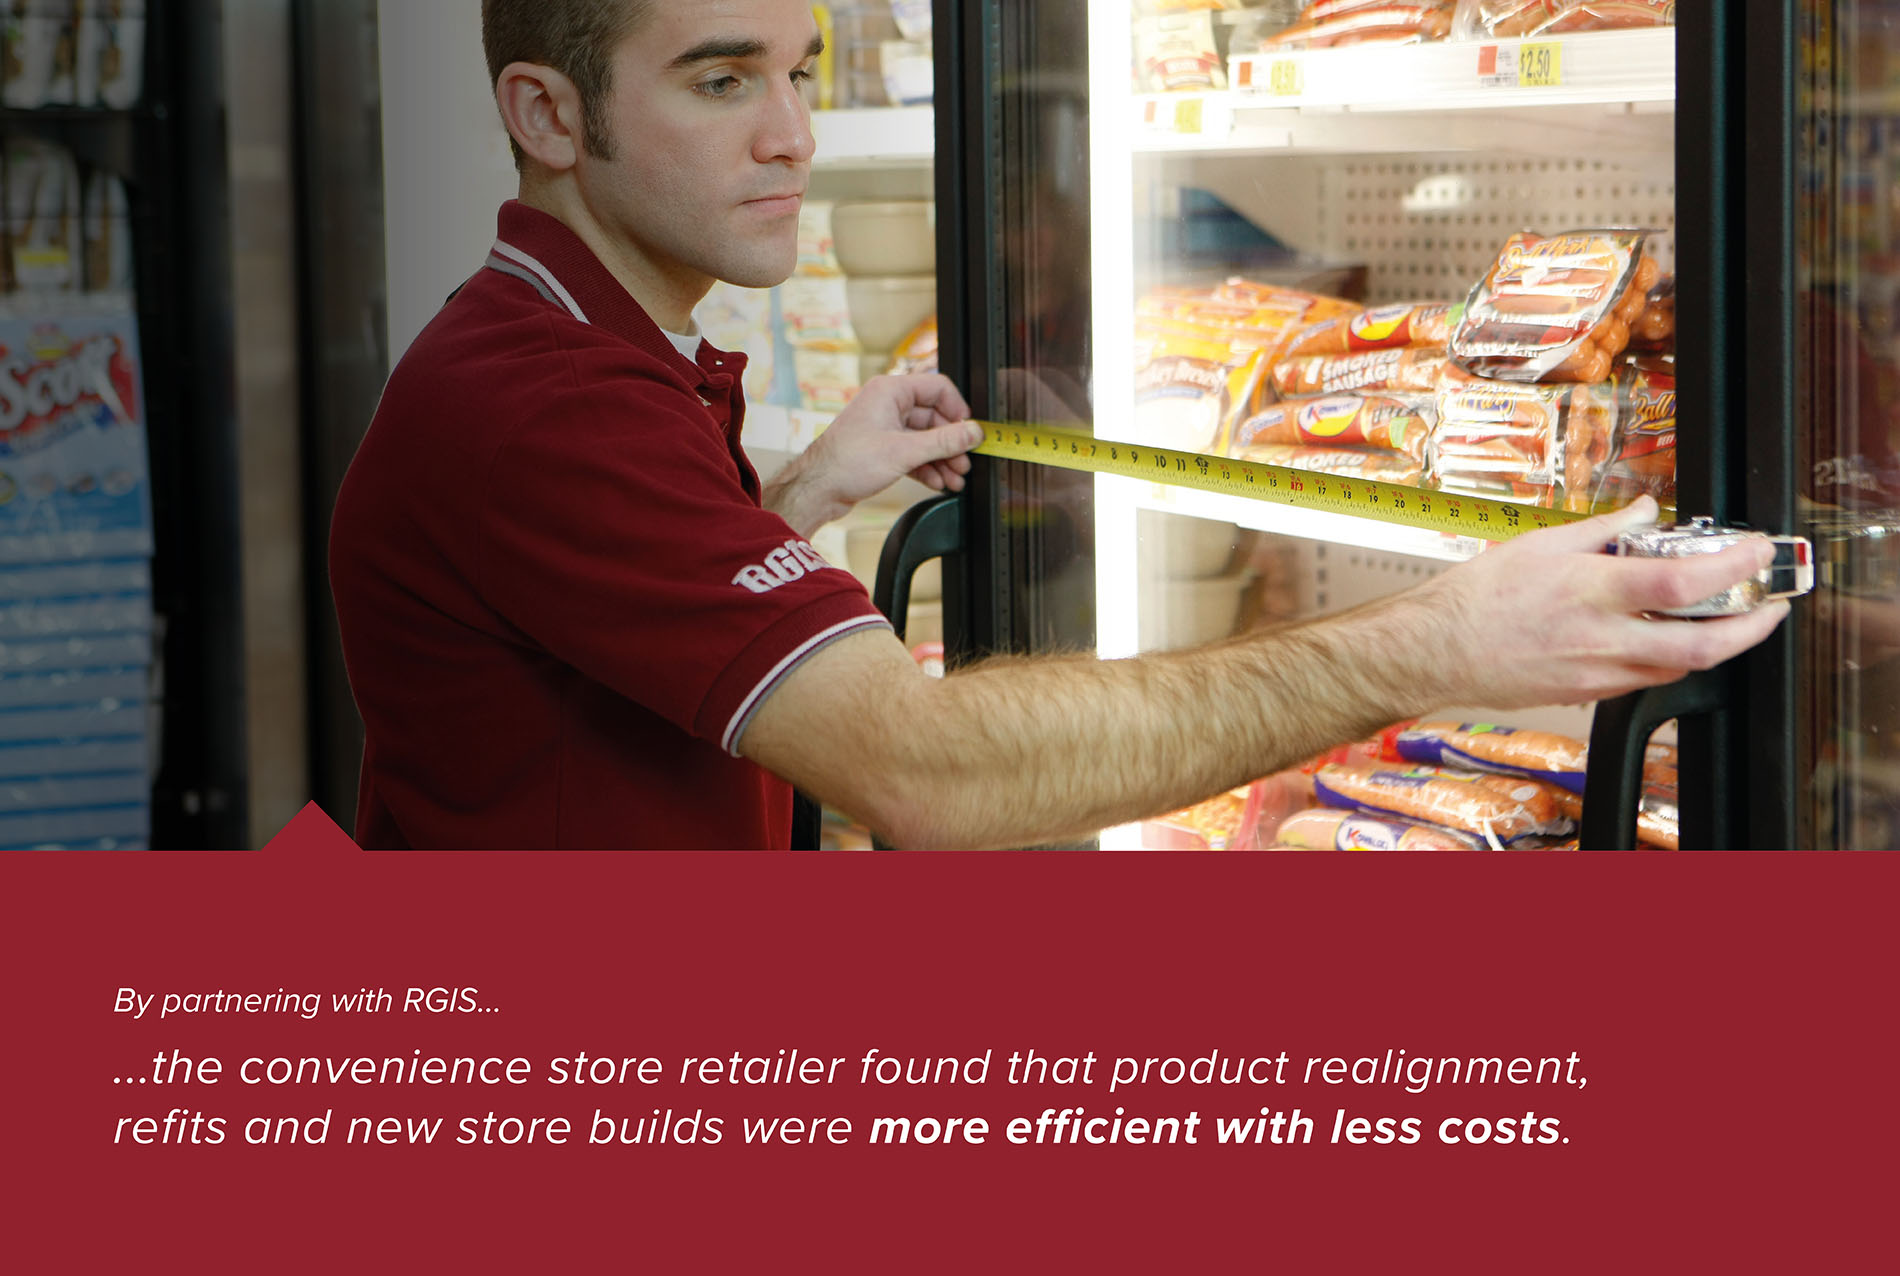 RGIS Case Study of Analysis of Store Layouts and Profit